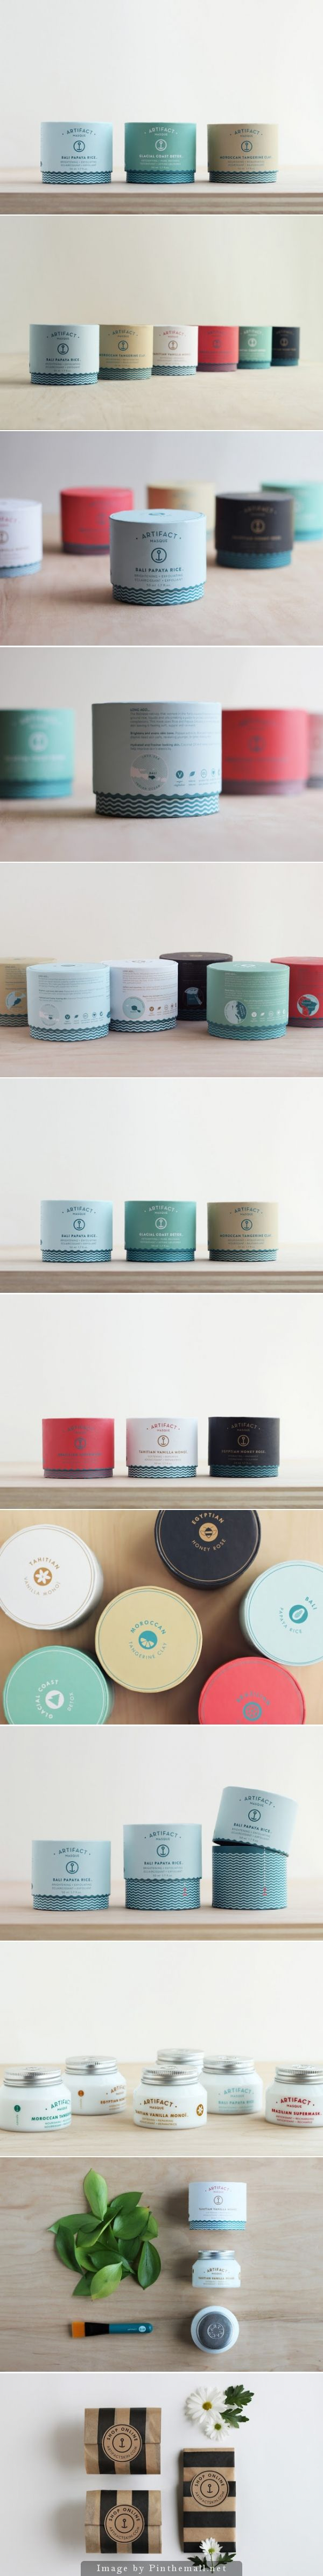 Artifact Masque http://www.packagingoftheworld.com/2014/06/artifact-masque.html